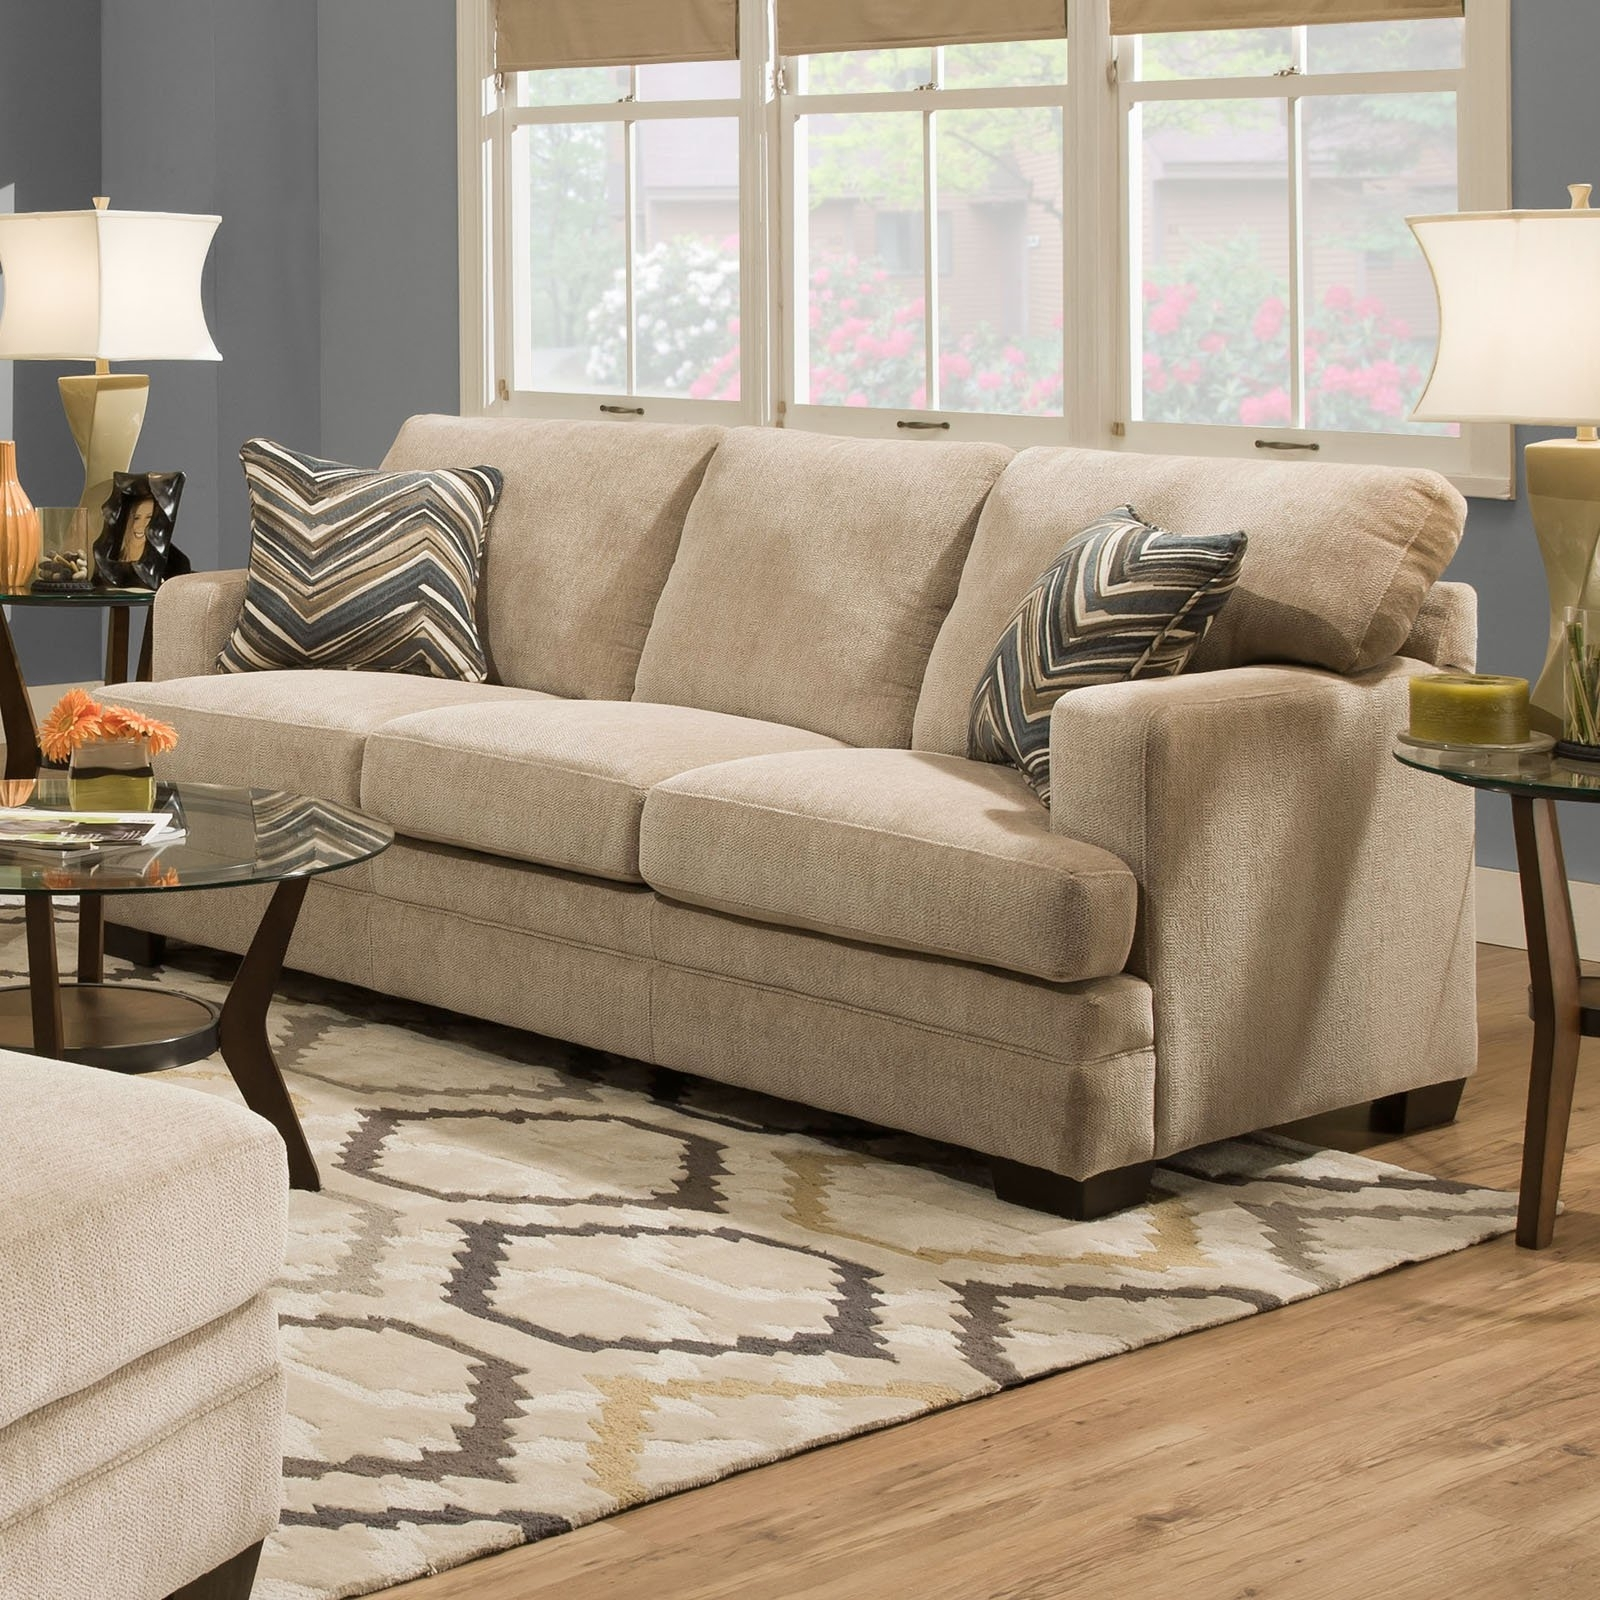 Widely Used Simmons Upholstery Sassy Sofa – Barley – Walmart Within Simmons Chaise Sofas (View 15 of 15)